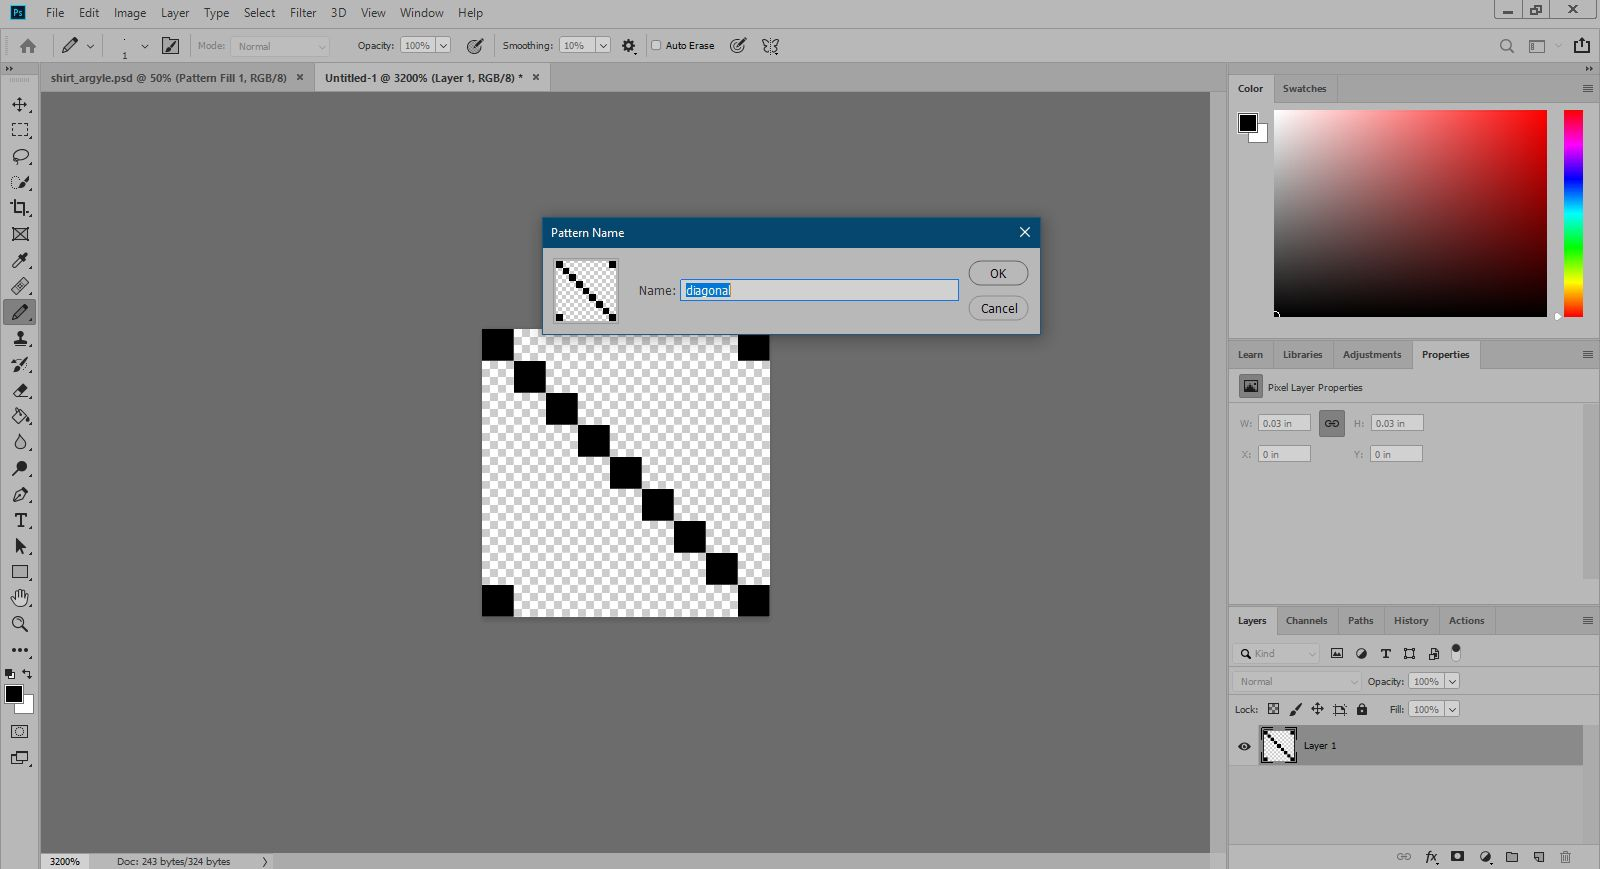 Naming the custom pattern in Photoshop.